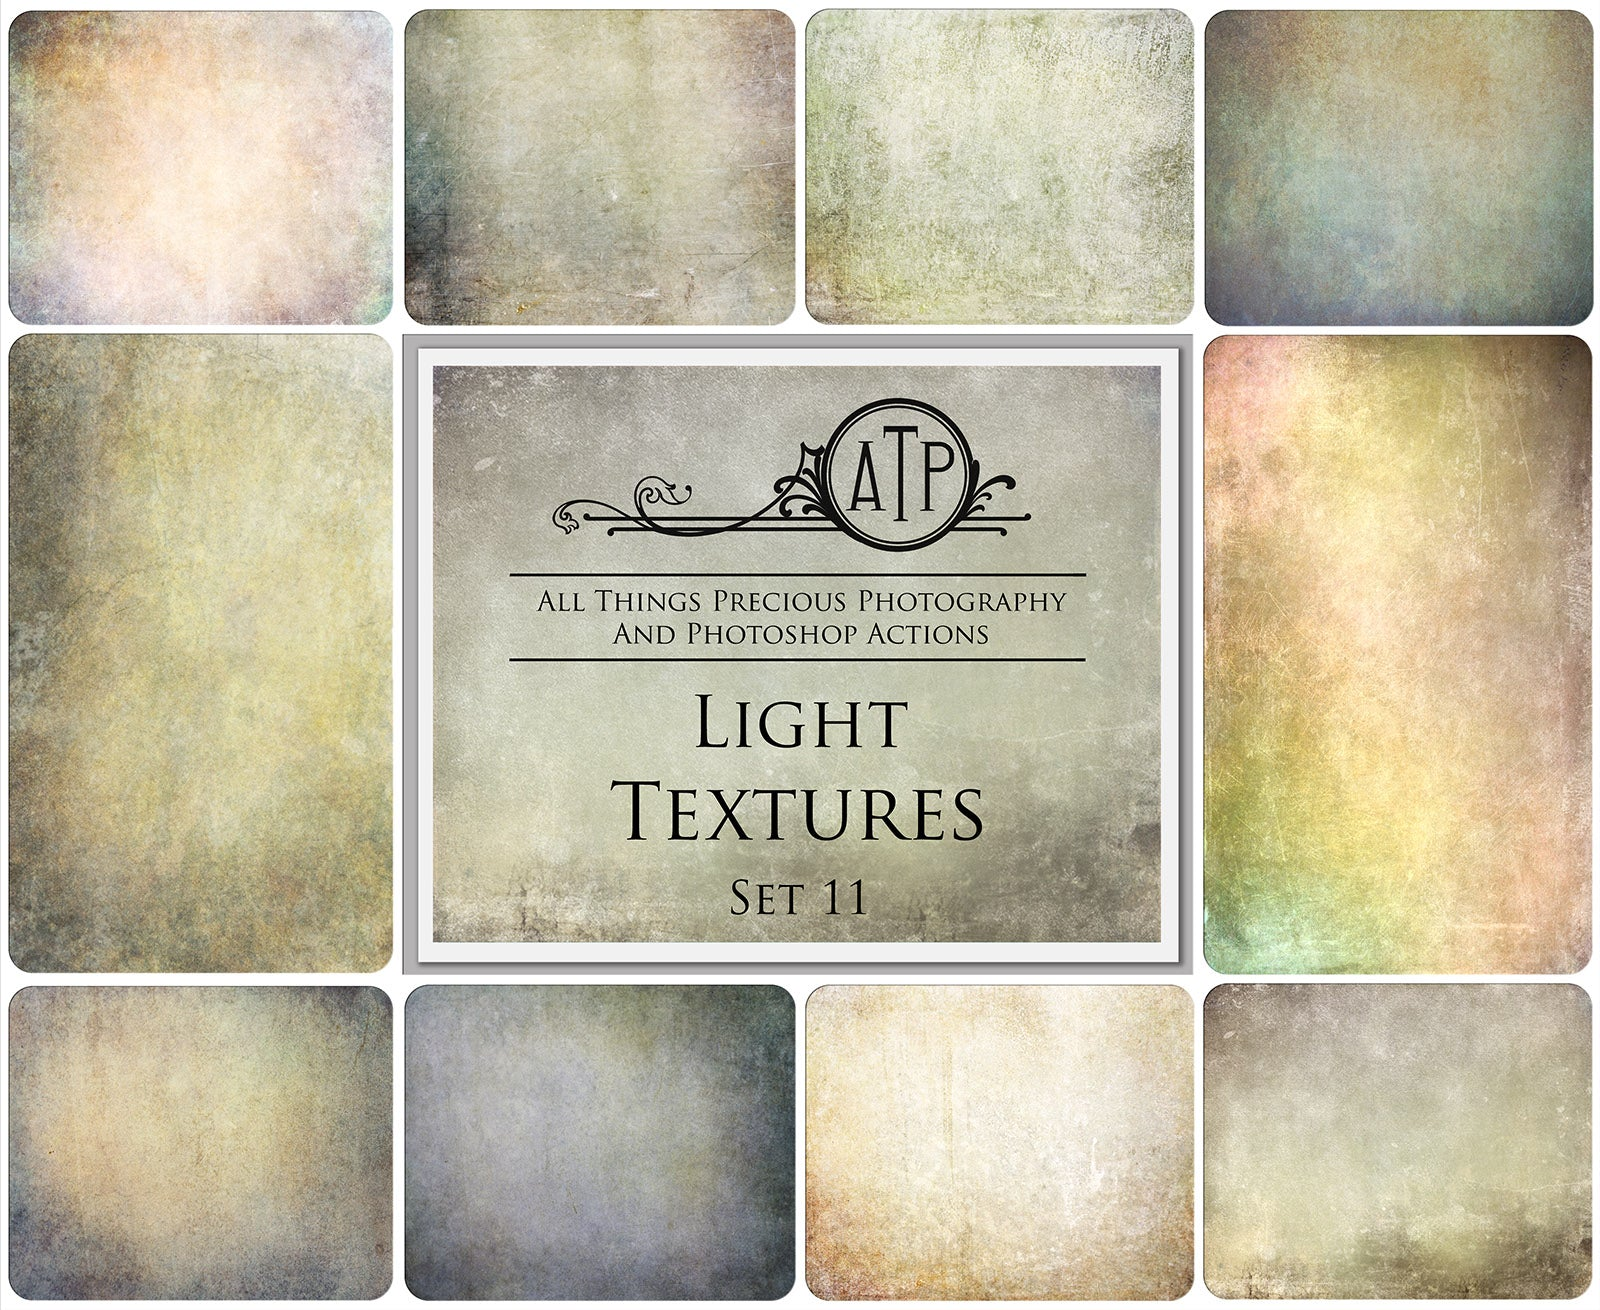 10 Fine Art TEXTURES - LIGHT Set 11